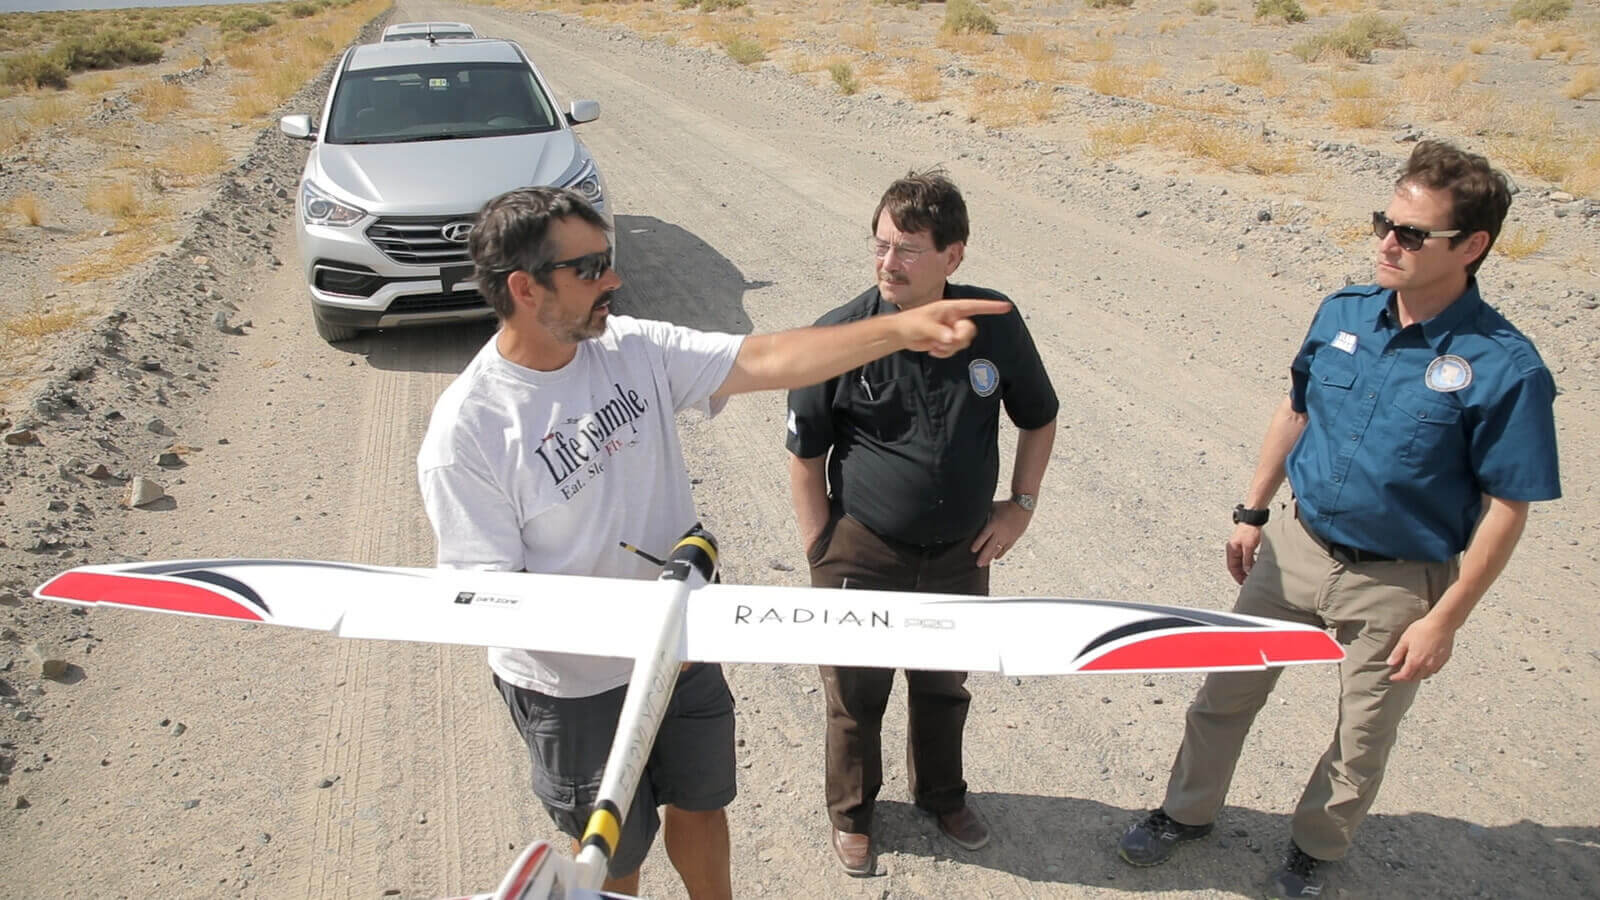 nevada-uas-test-site Nevada UAS Test Site Tries out Artificial Intelligence with Microsoft Researchers